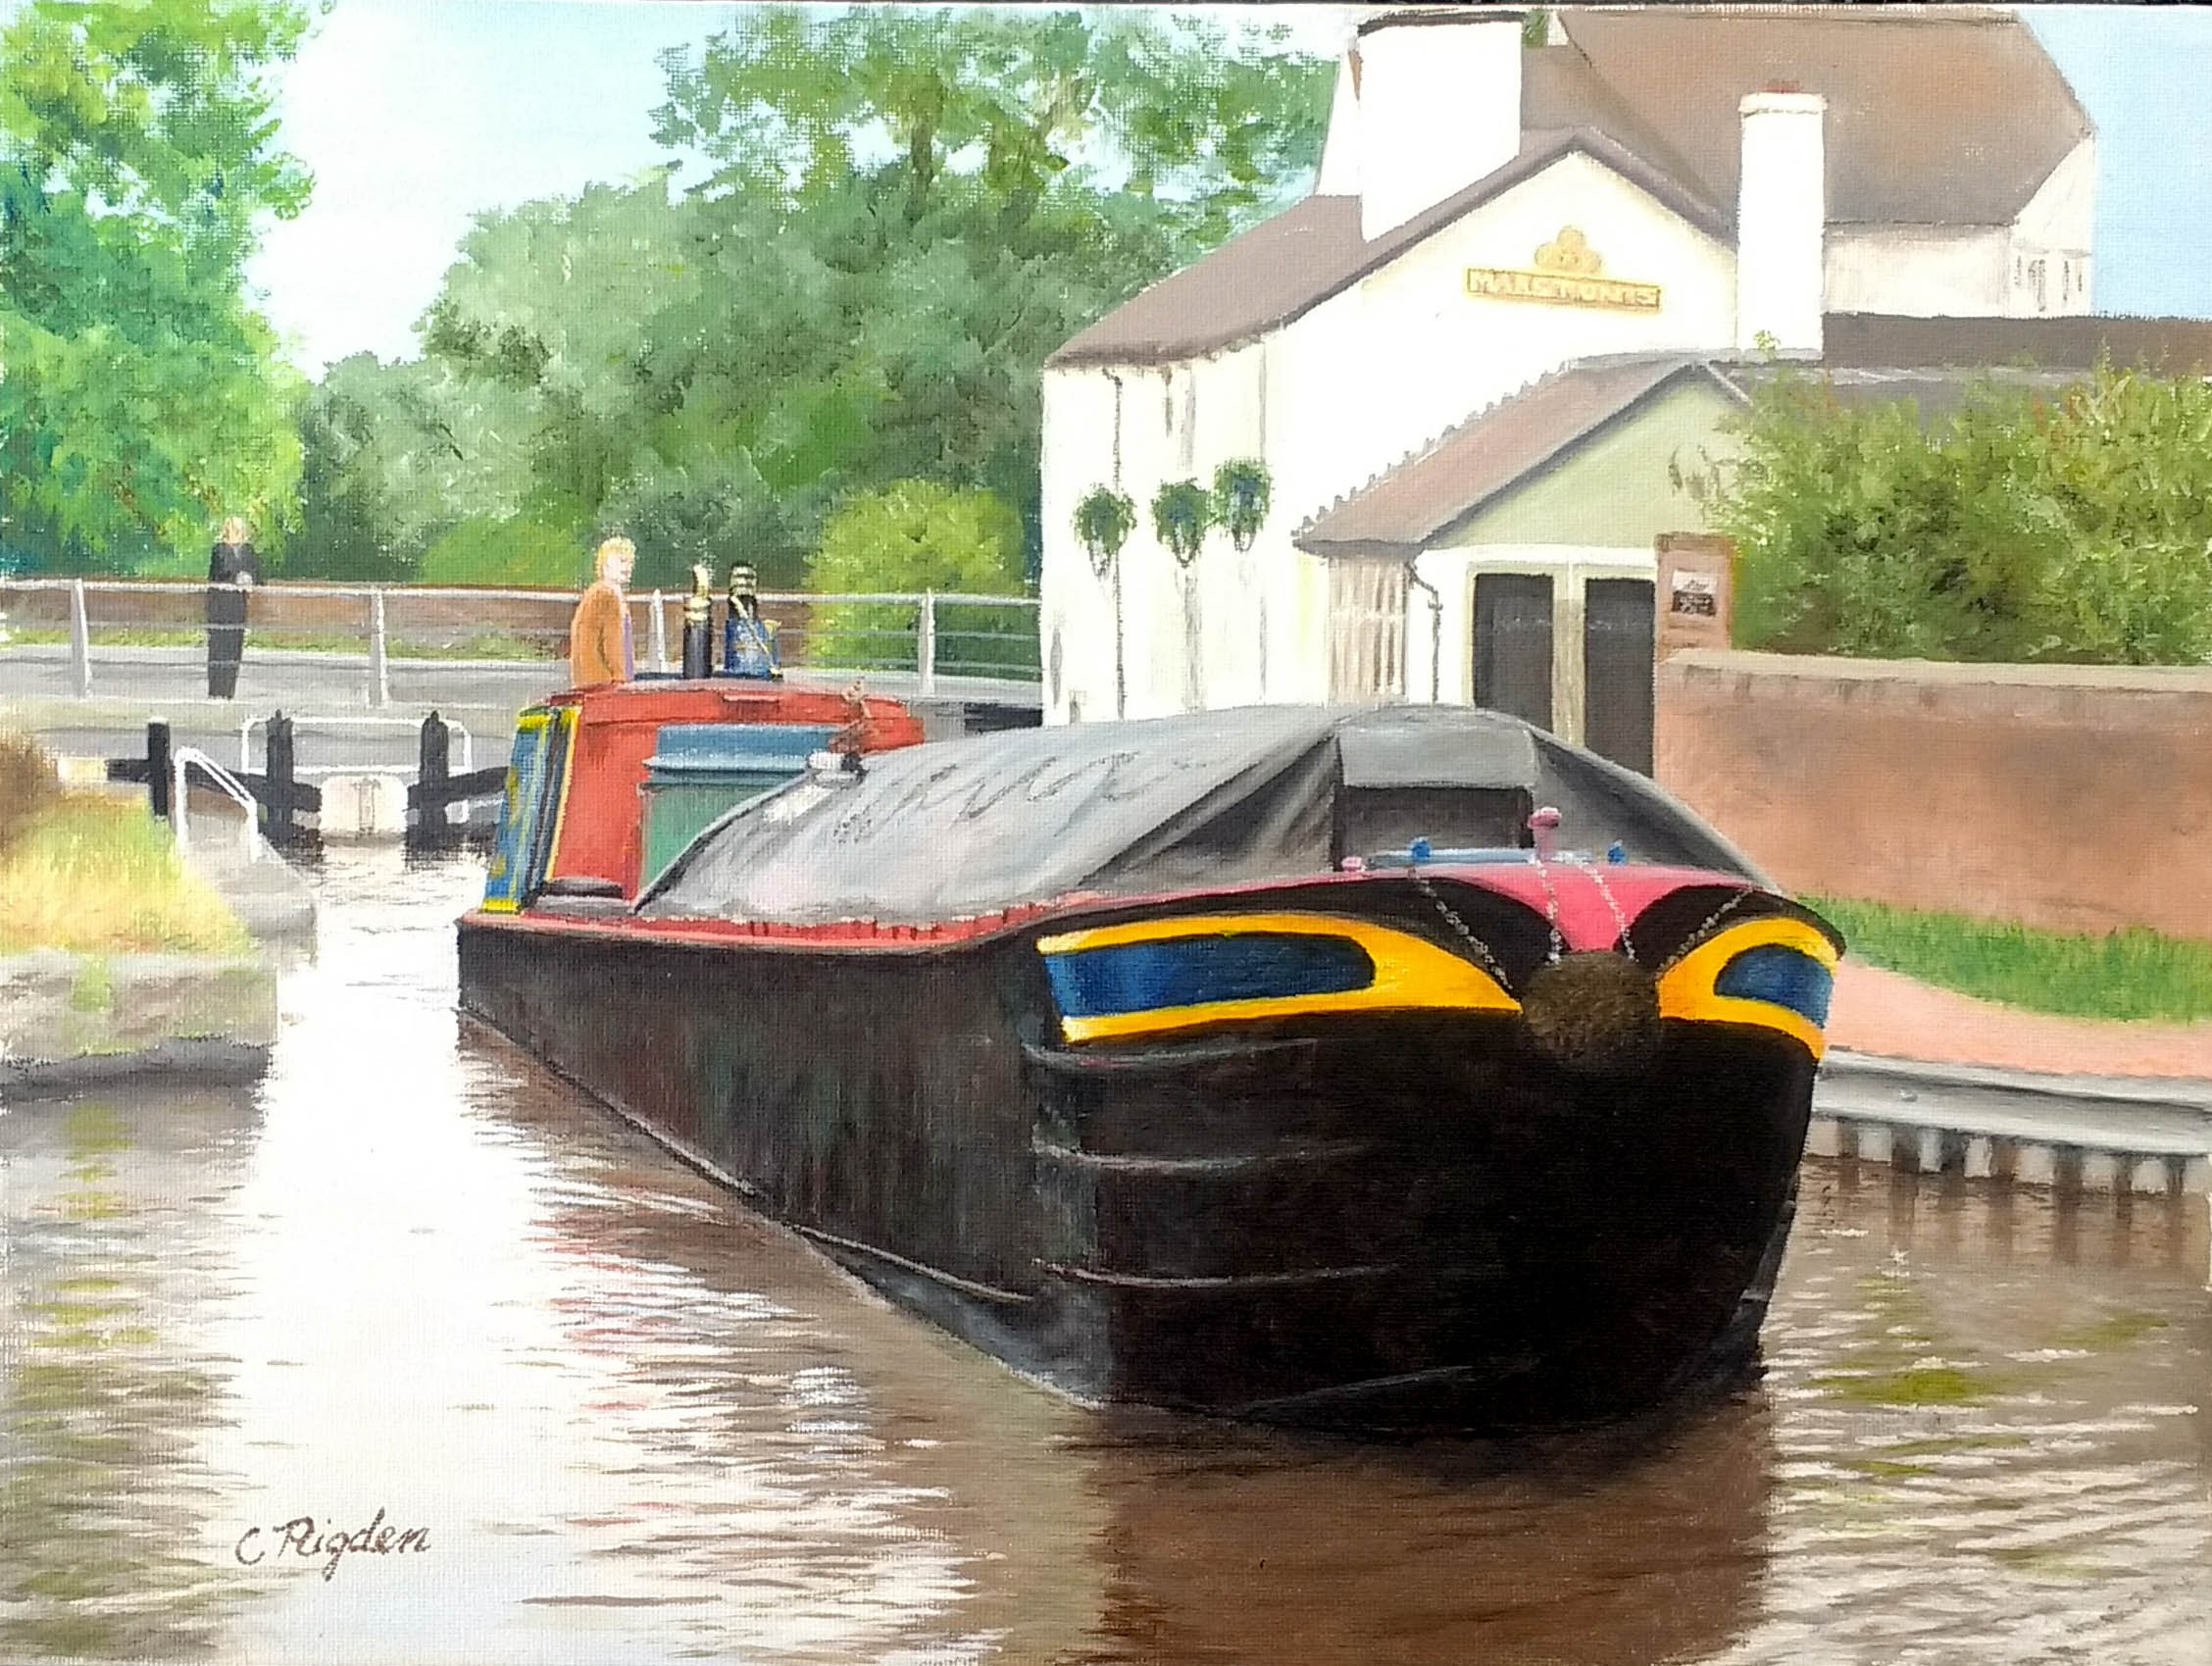 "NB Lindsay at Star Lock (steered by Liz), acrylic on board, 14""x18"""